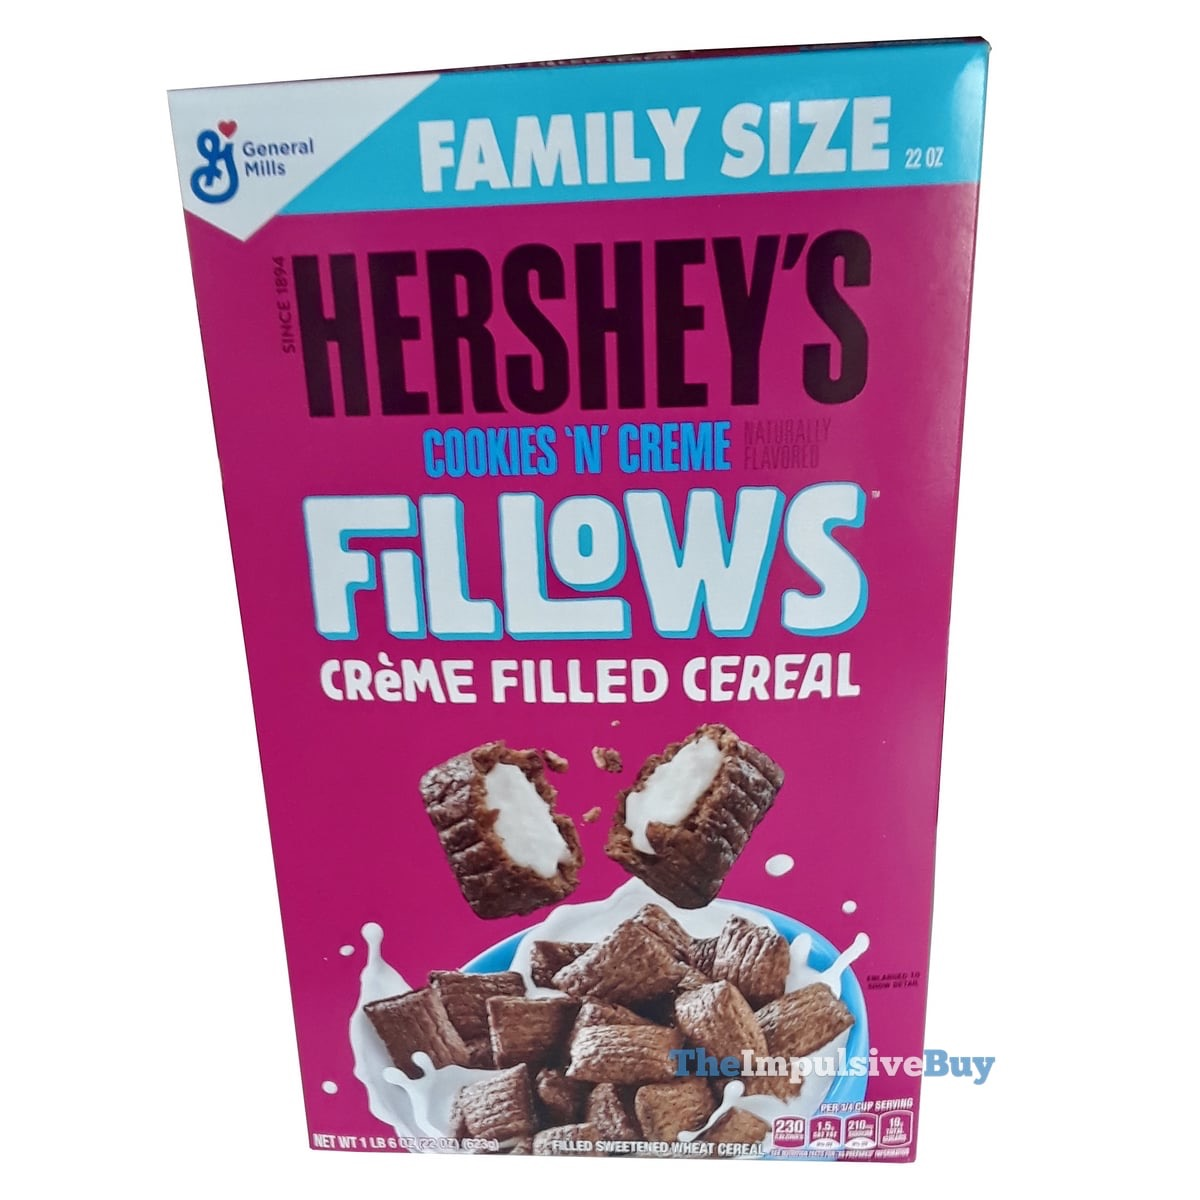 REVIEW: Fillows Creme Filled Cereal